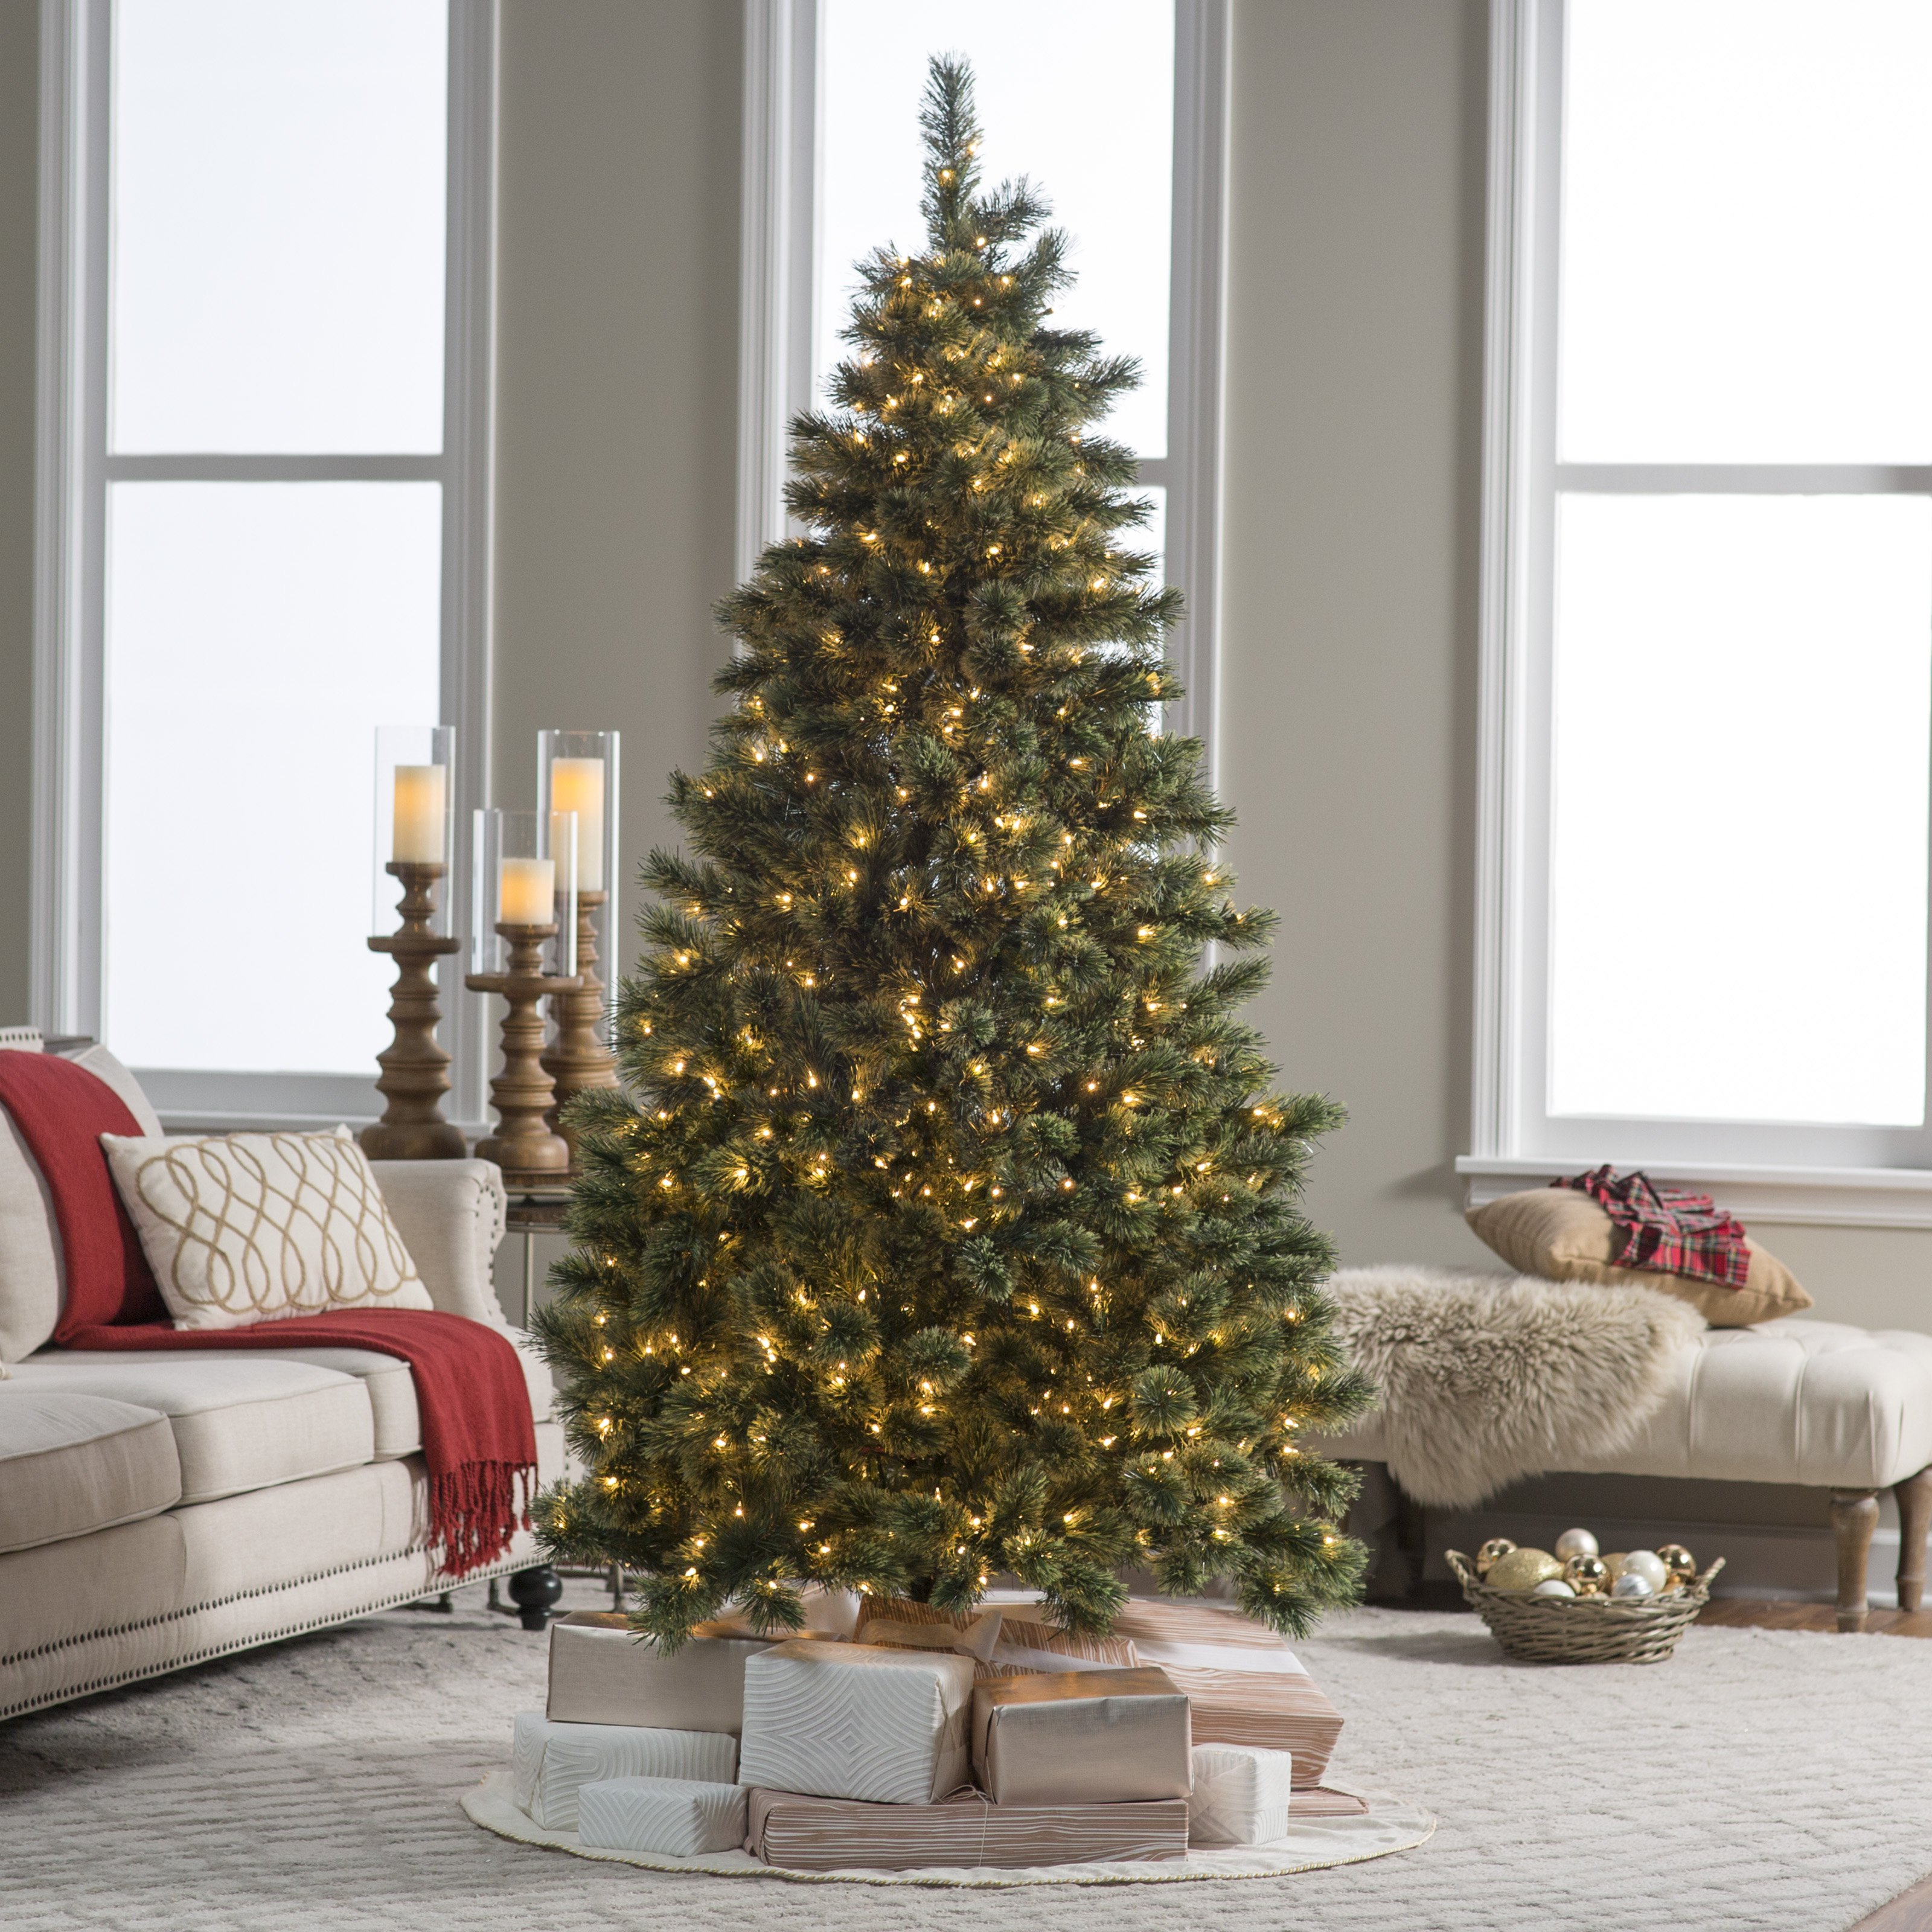 Most Realistic Artificial Christmas Tree Reviews: Pre-Lit 9' Sheridan Cashmere Pine Artificial Christmas